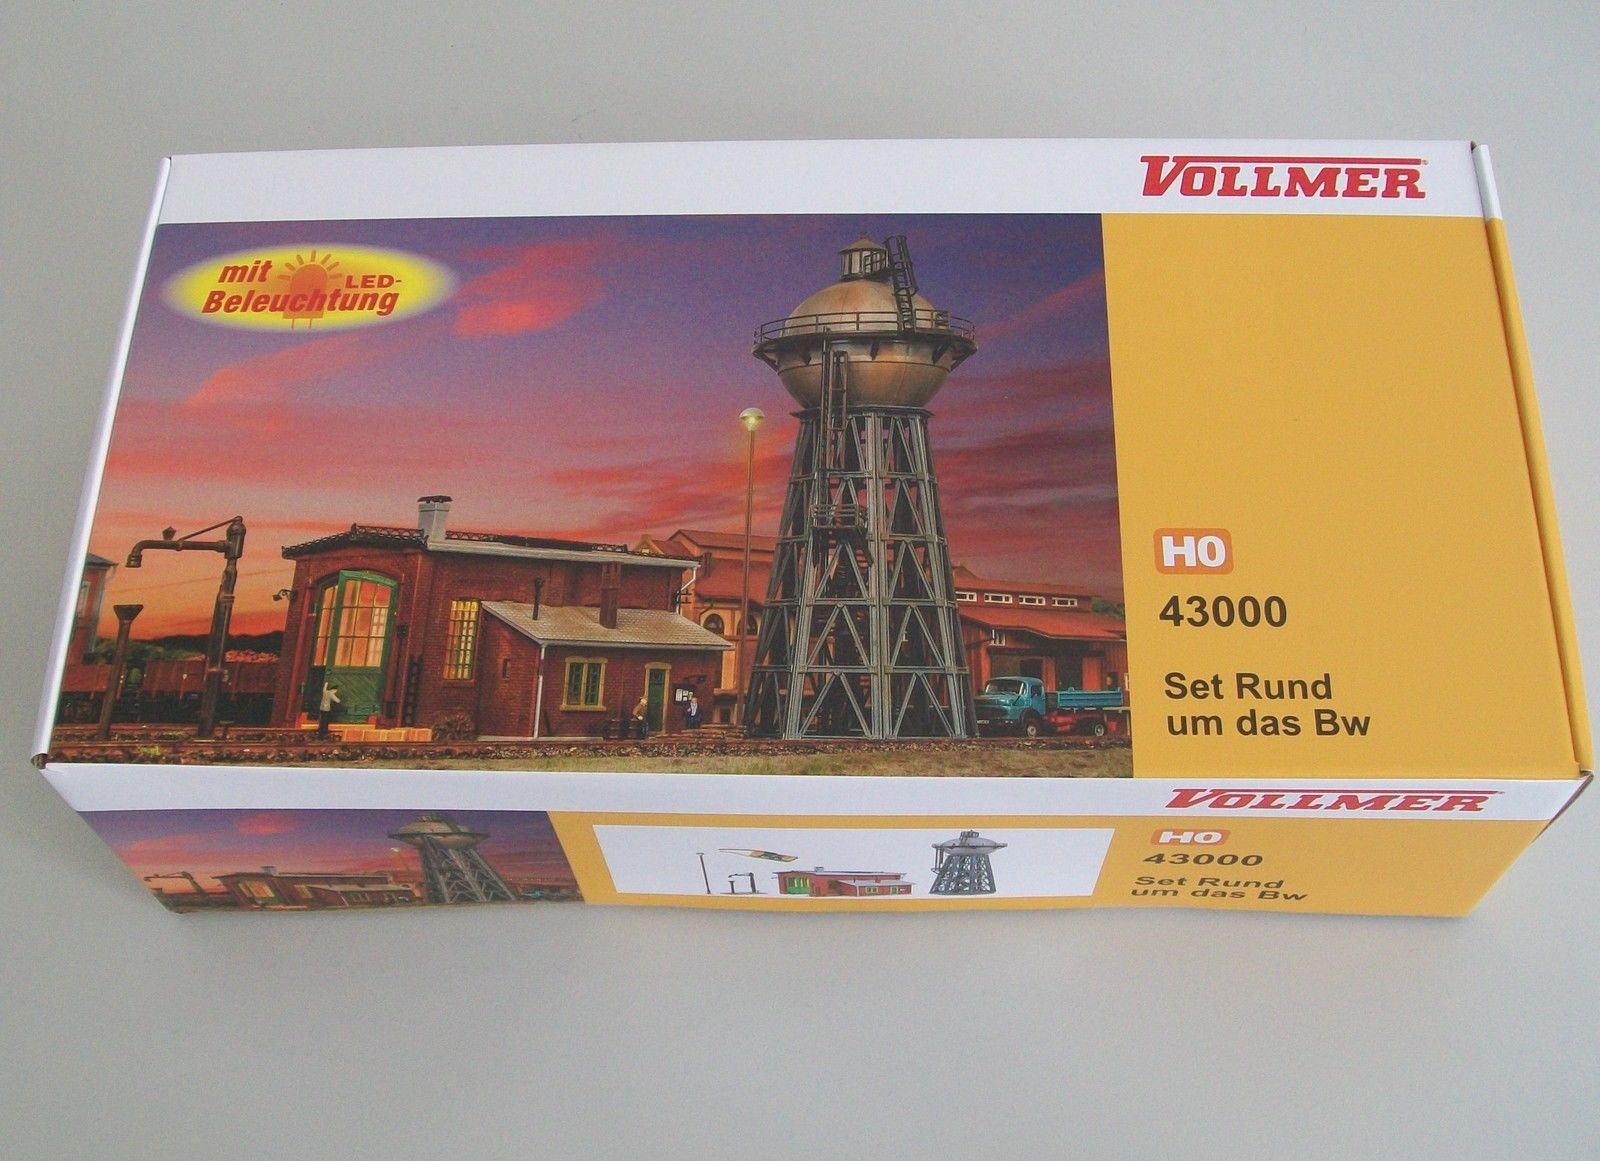 43000 Vollmer HO Set deposito locomotive con illuminazione e accessori sc. 1:87